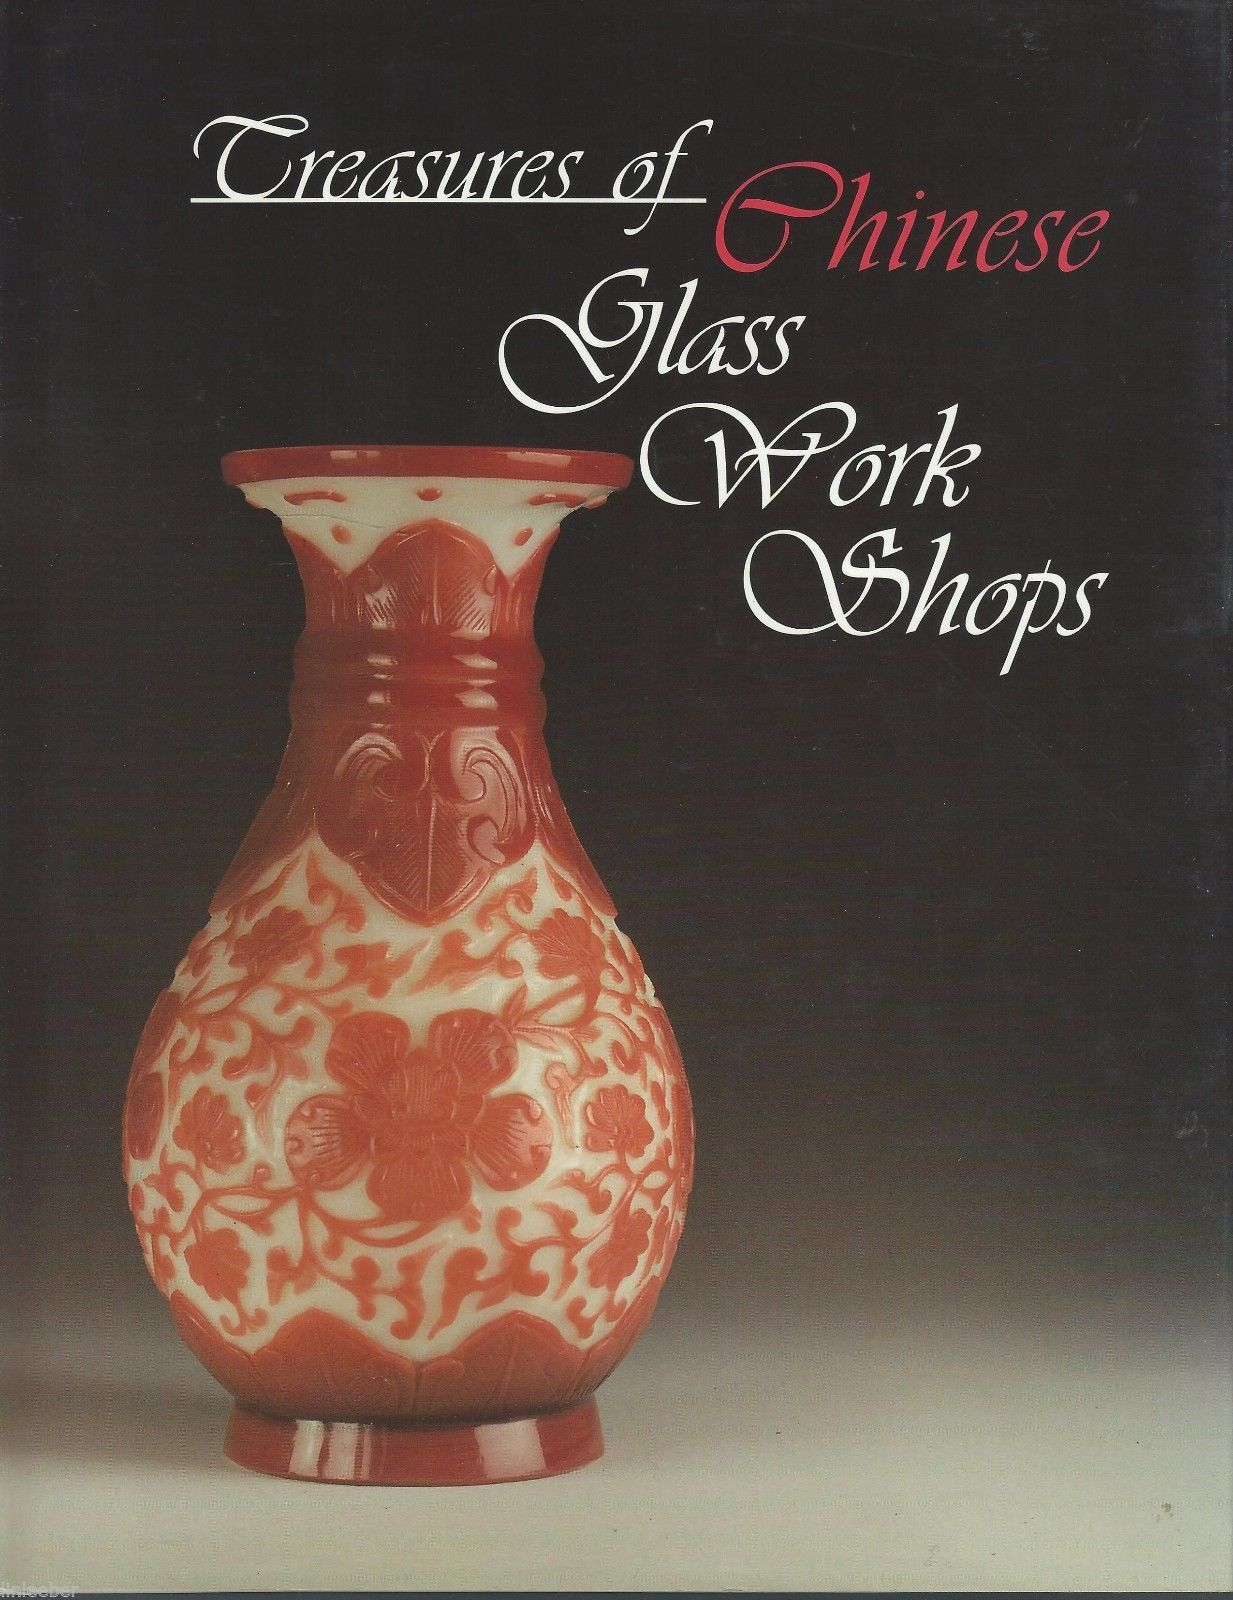 Primary image for Treasures of Chinese Glass Work Shops:Selection of Chinese Qing Dynasty Glass